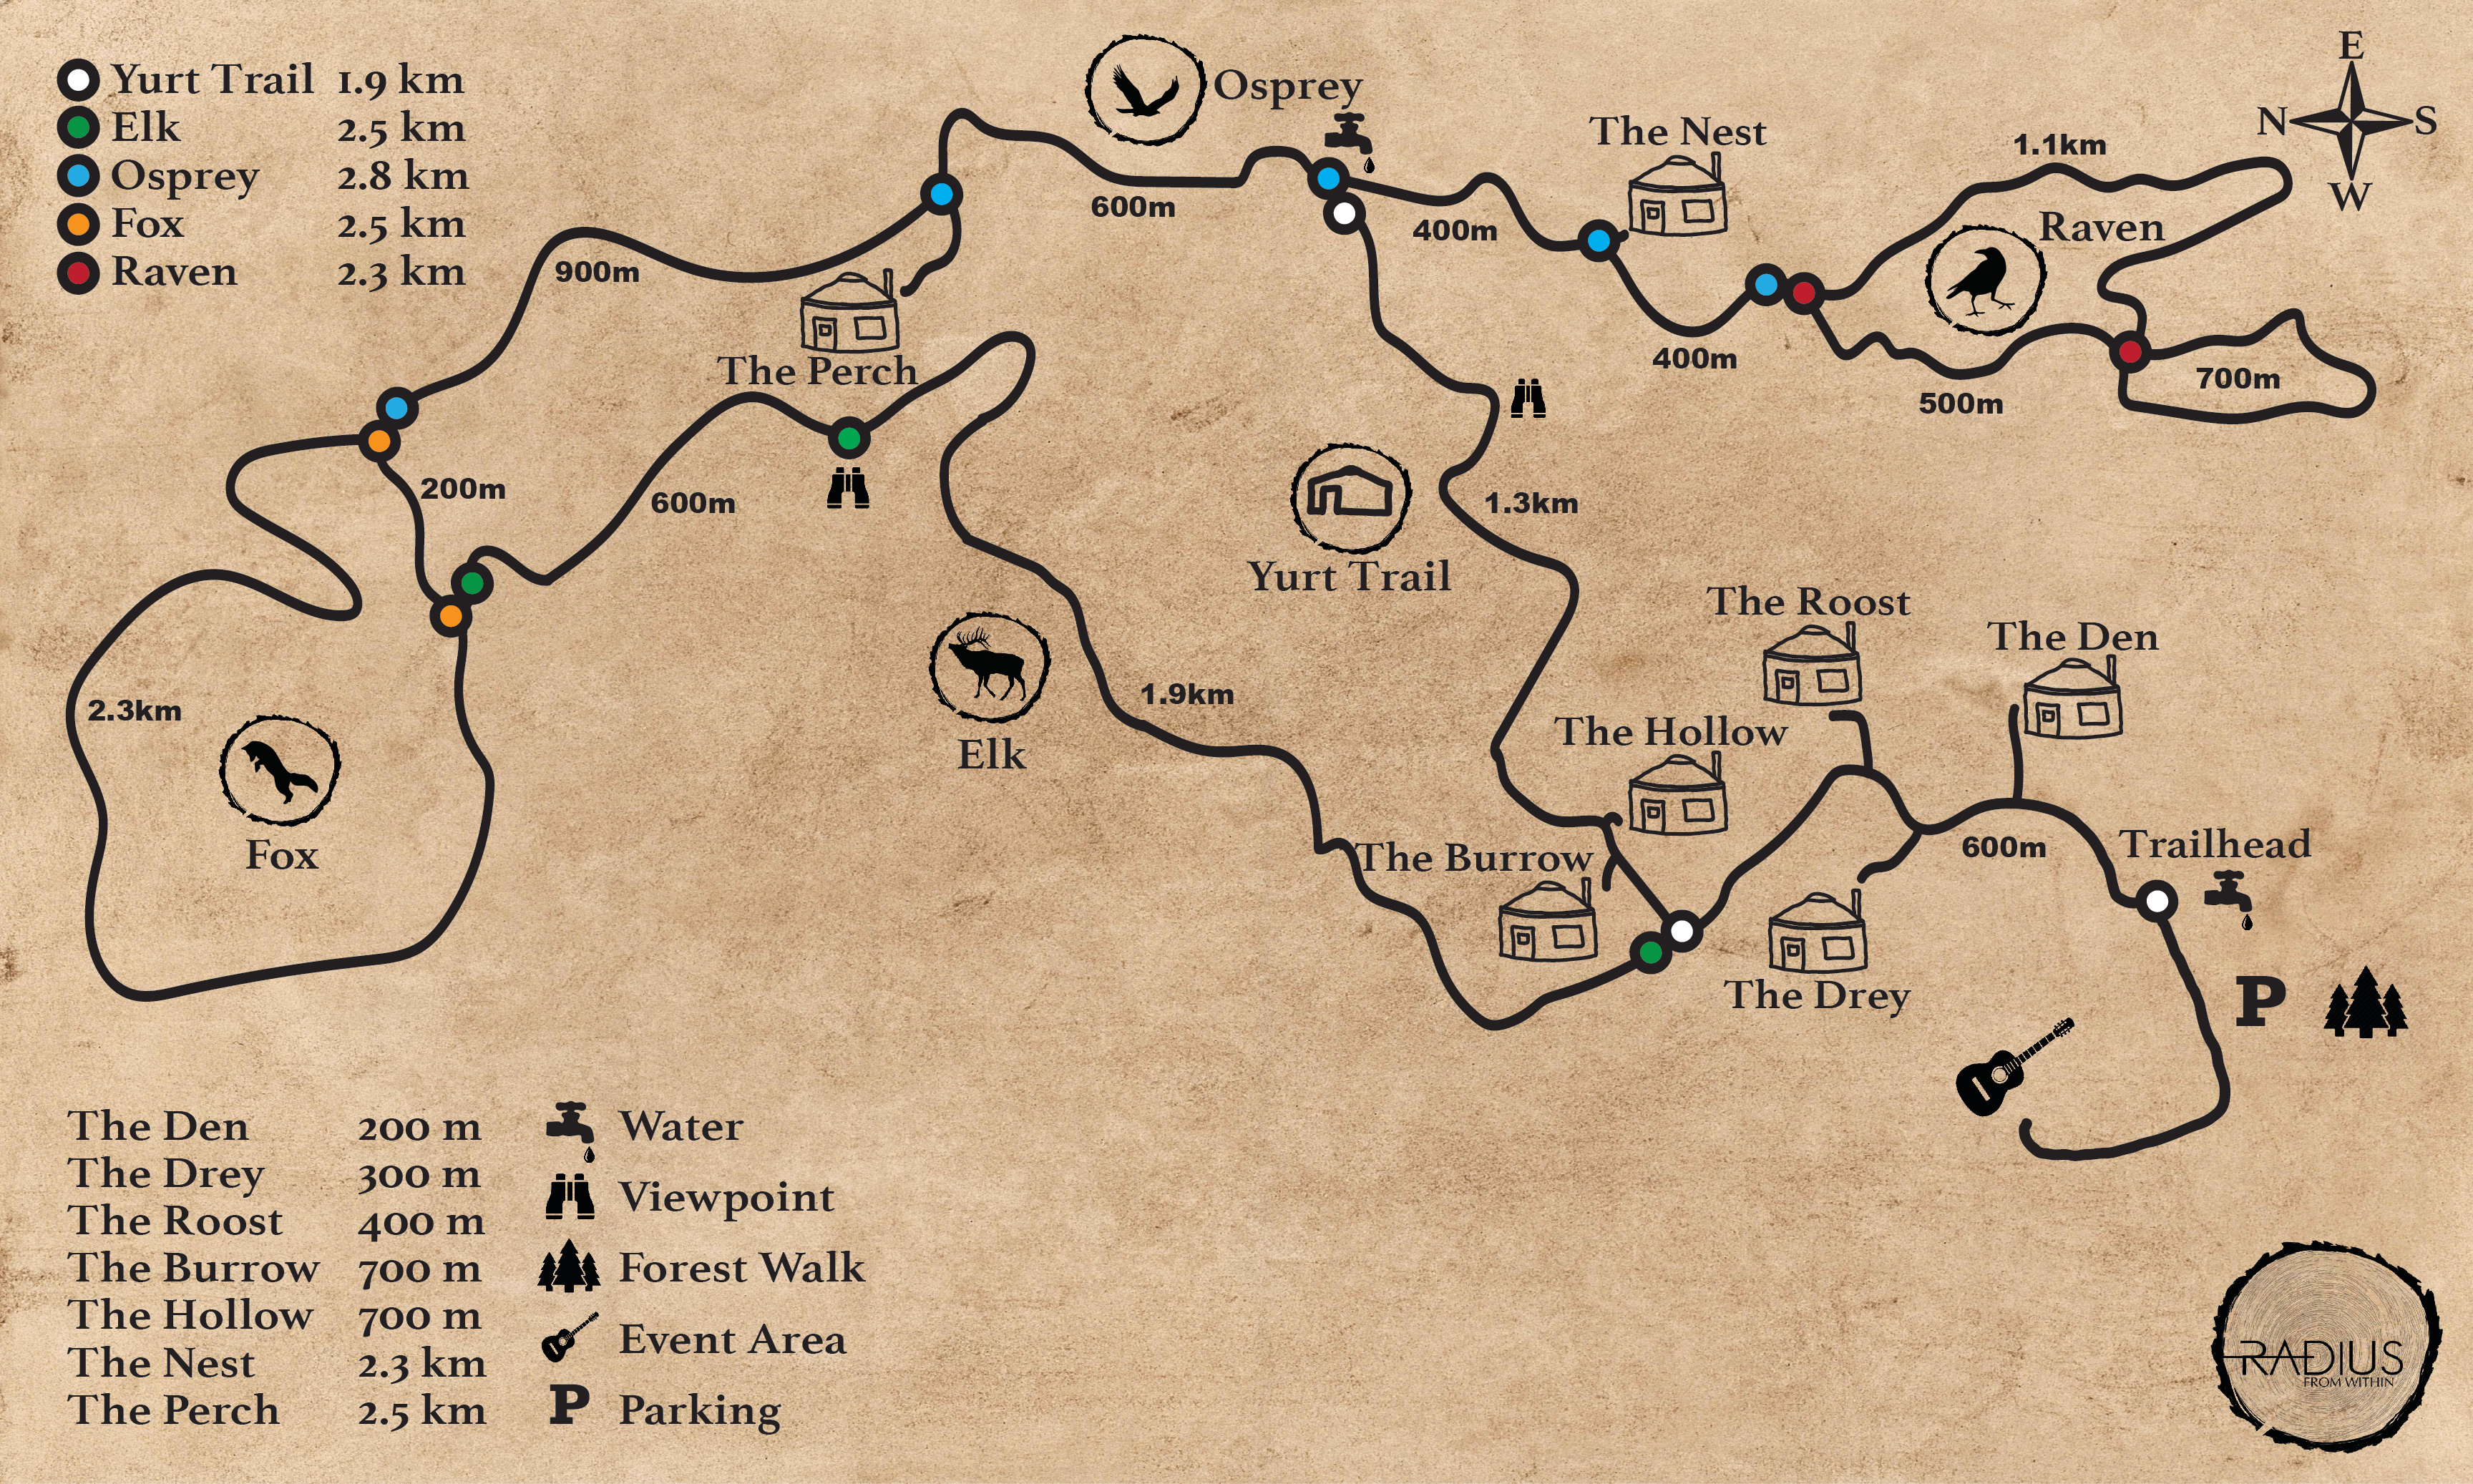 Radius Trail Map